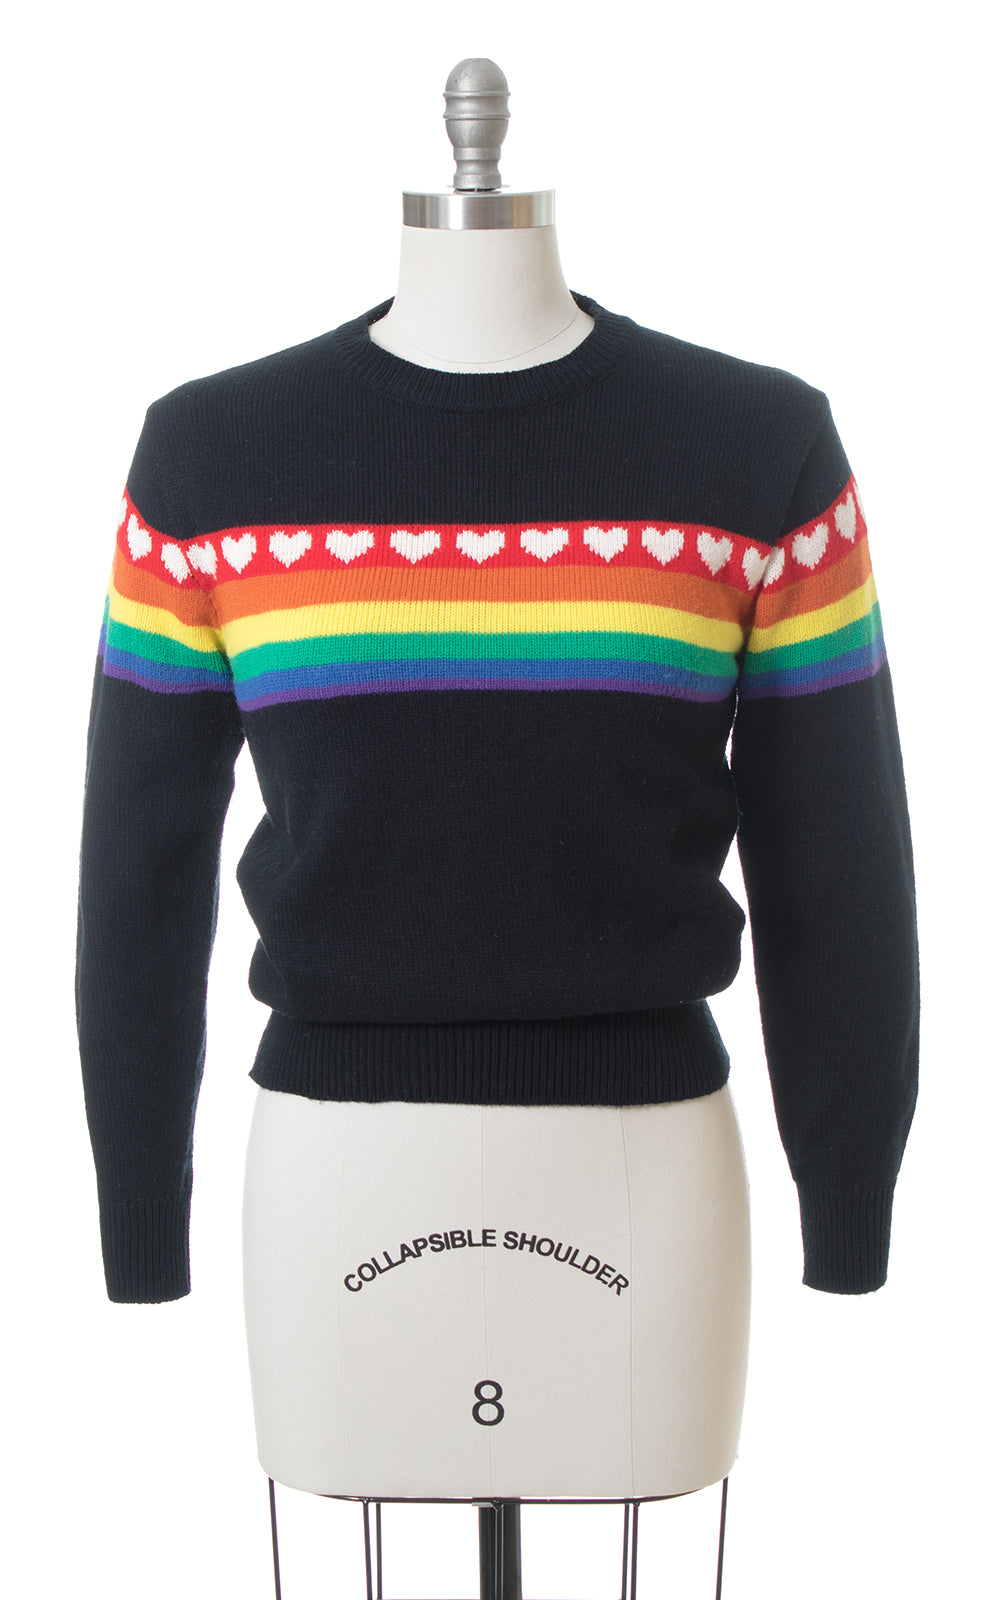 1990s Hearts & Rainbow Novelty Print Knit Sweater Top